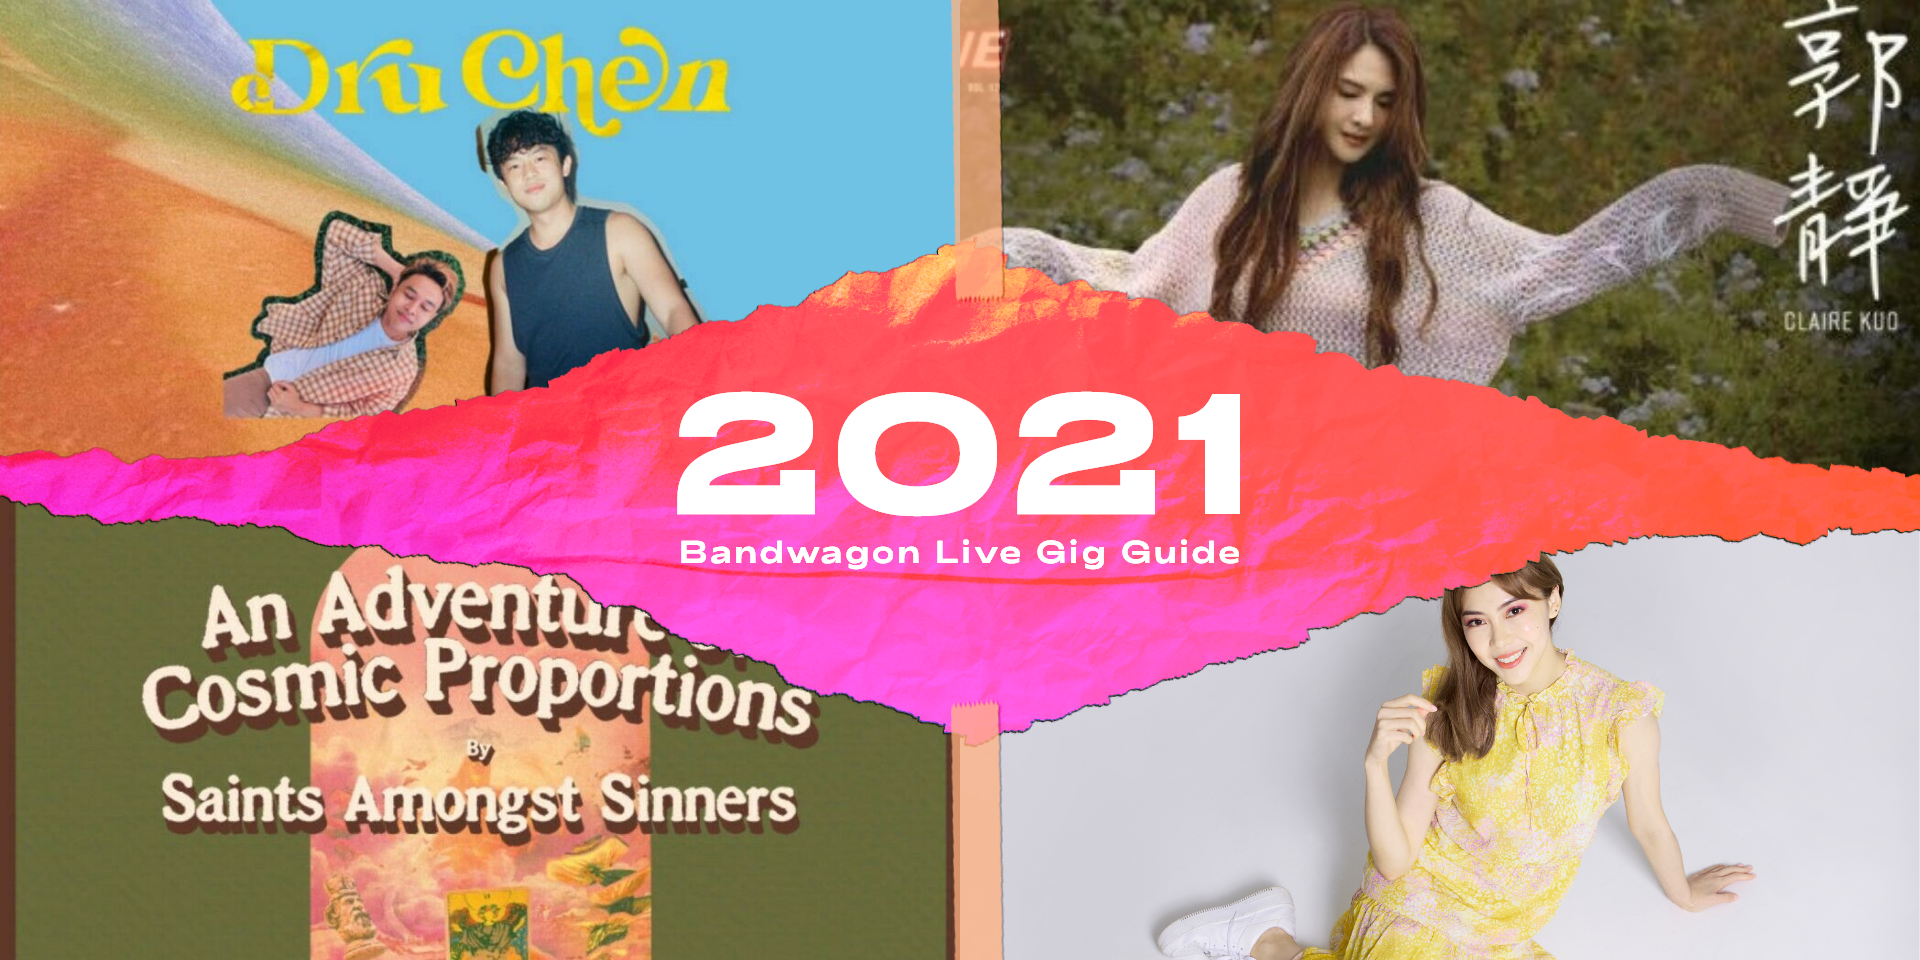 Live gigs and concerts to catch in Singapore in 2021 — Bitty, Claire Kuo, MICappella, and more